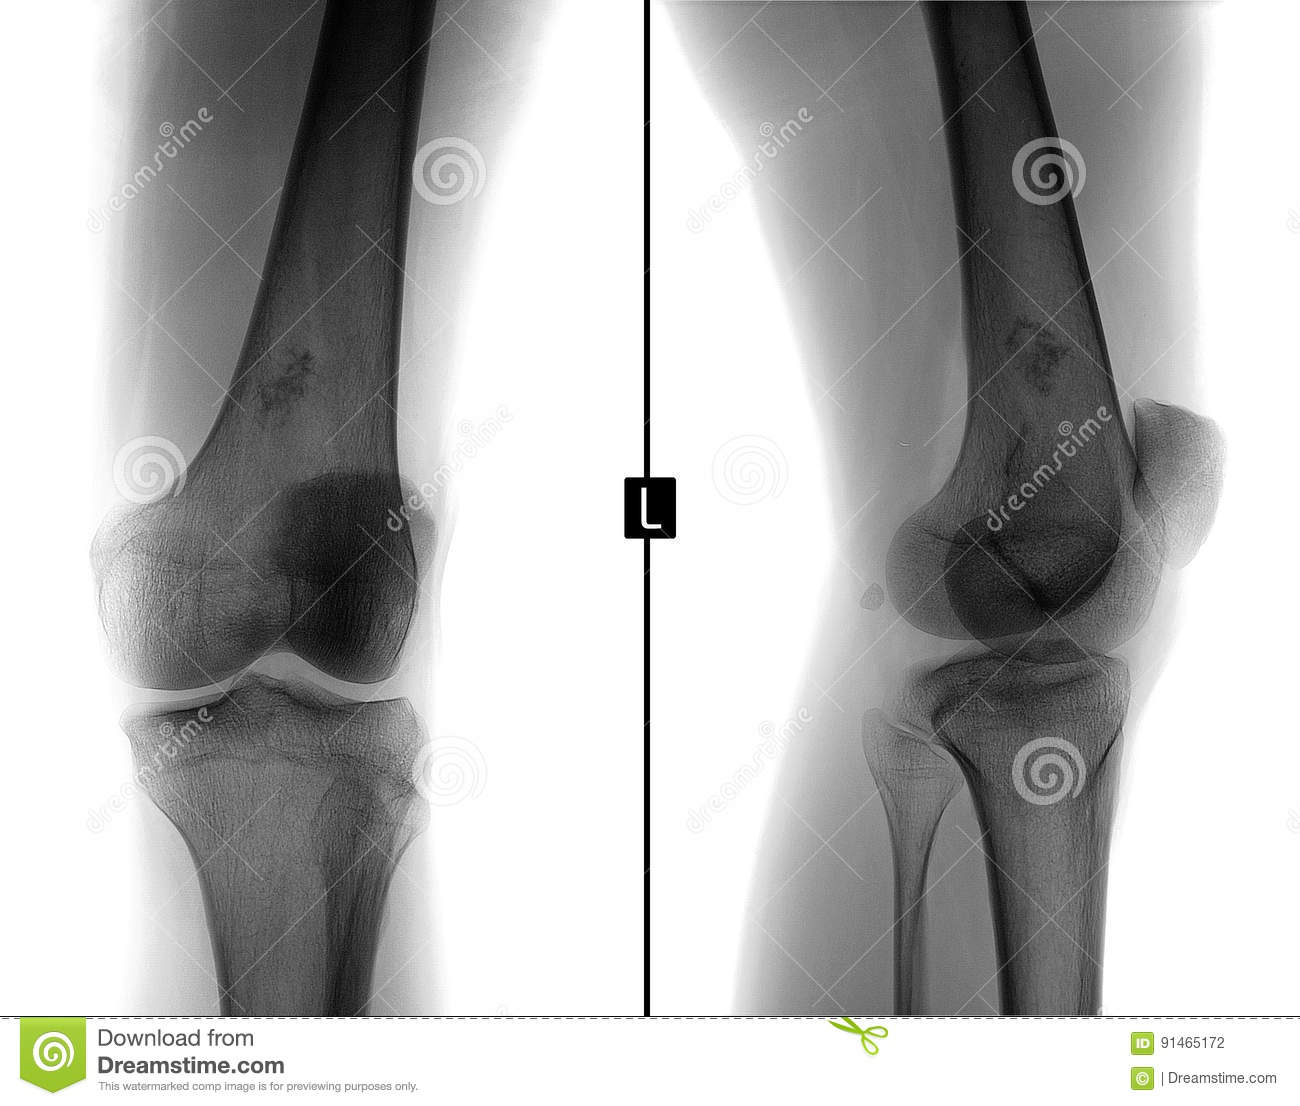 X-ray of the left knee joint. Ewing sarcoma, lymphoma, myeloma thigh bone. Negative.